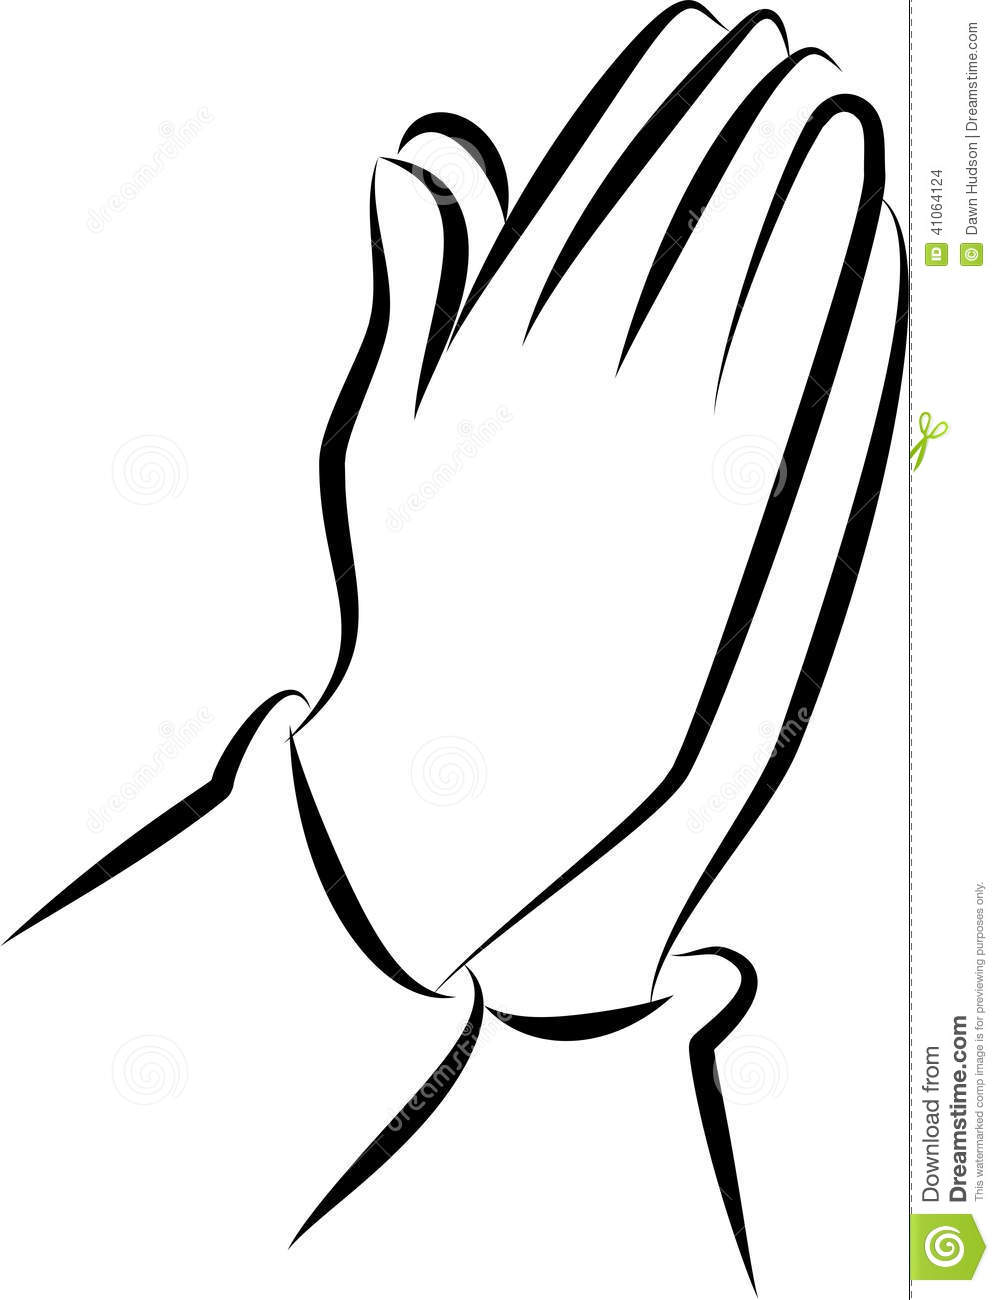 praying hands clip art stock illustration illustration of faith rh dreamstime com praying hands clipart free prayer hands clip art